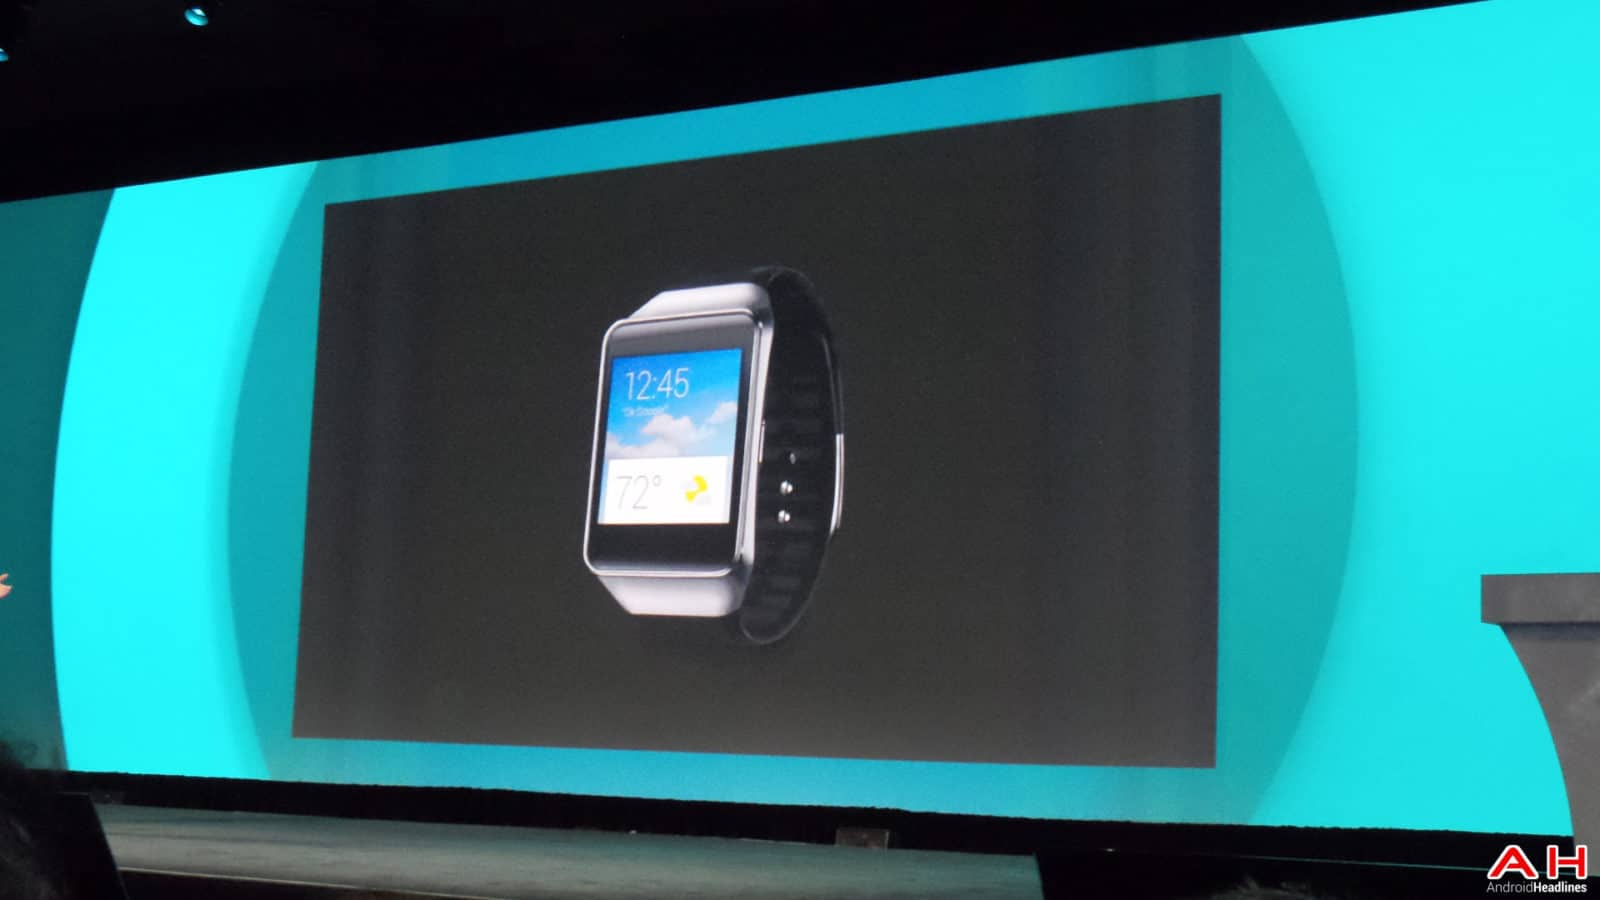 AH Google IO 2014 (308 of 18) Android Wear Samsung